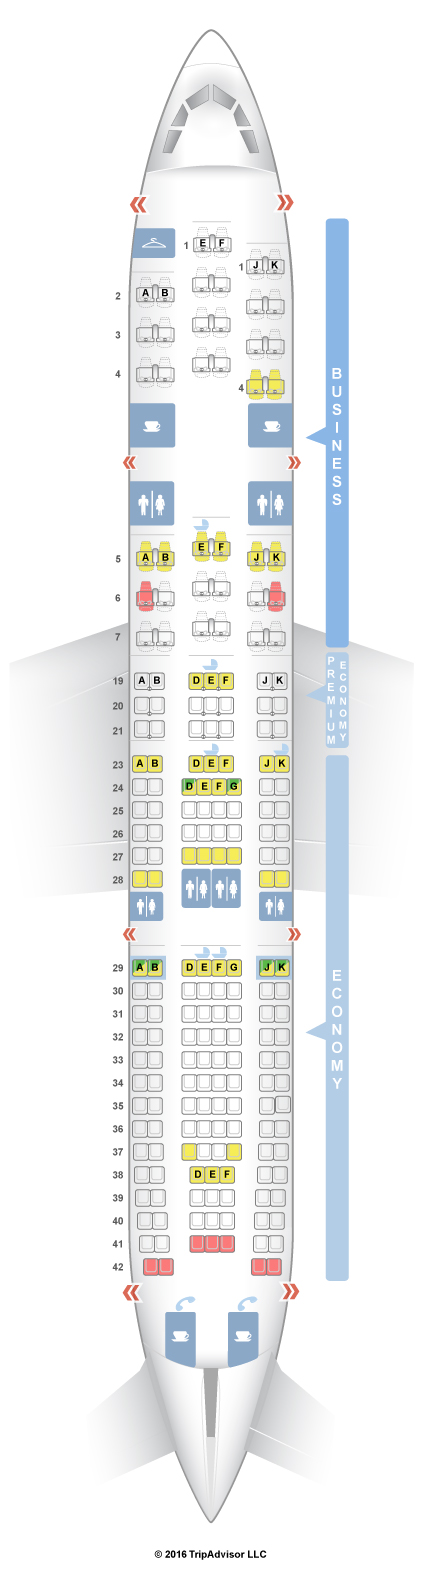 Seatguru seat map air france airbus a330 200 332 for Air algerie vol interieur horaire